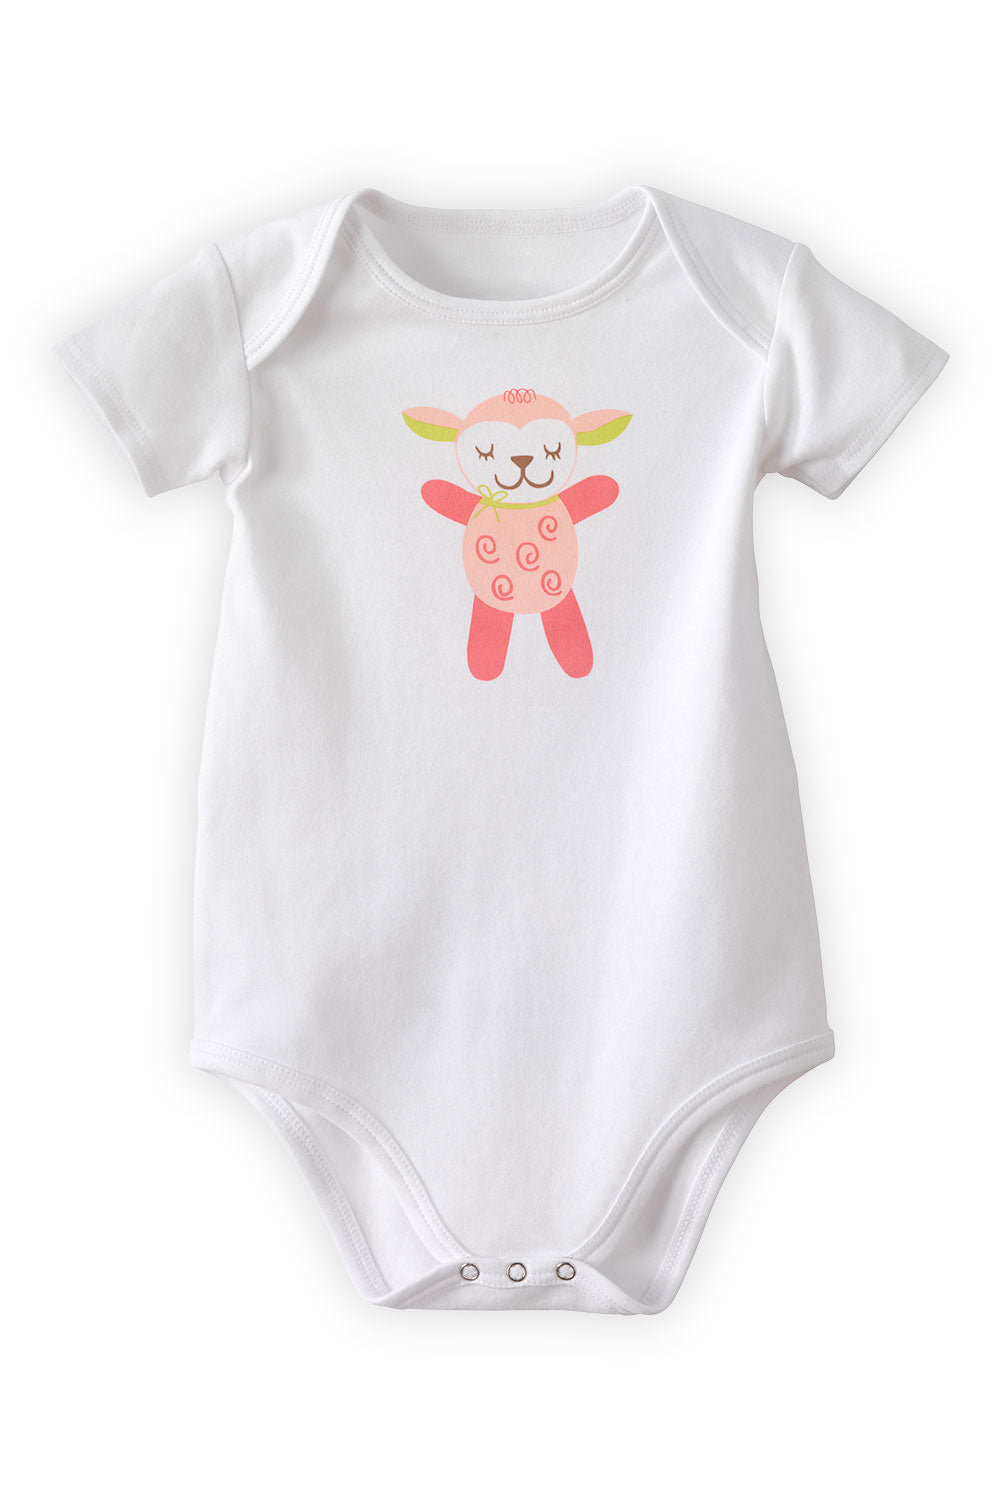 joobles-fair-trade-organic-baby-bodysuit-cutie-the-lamb